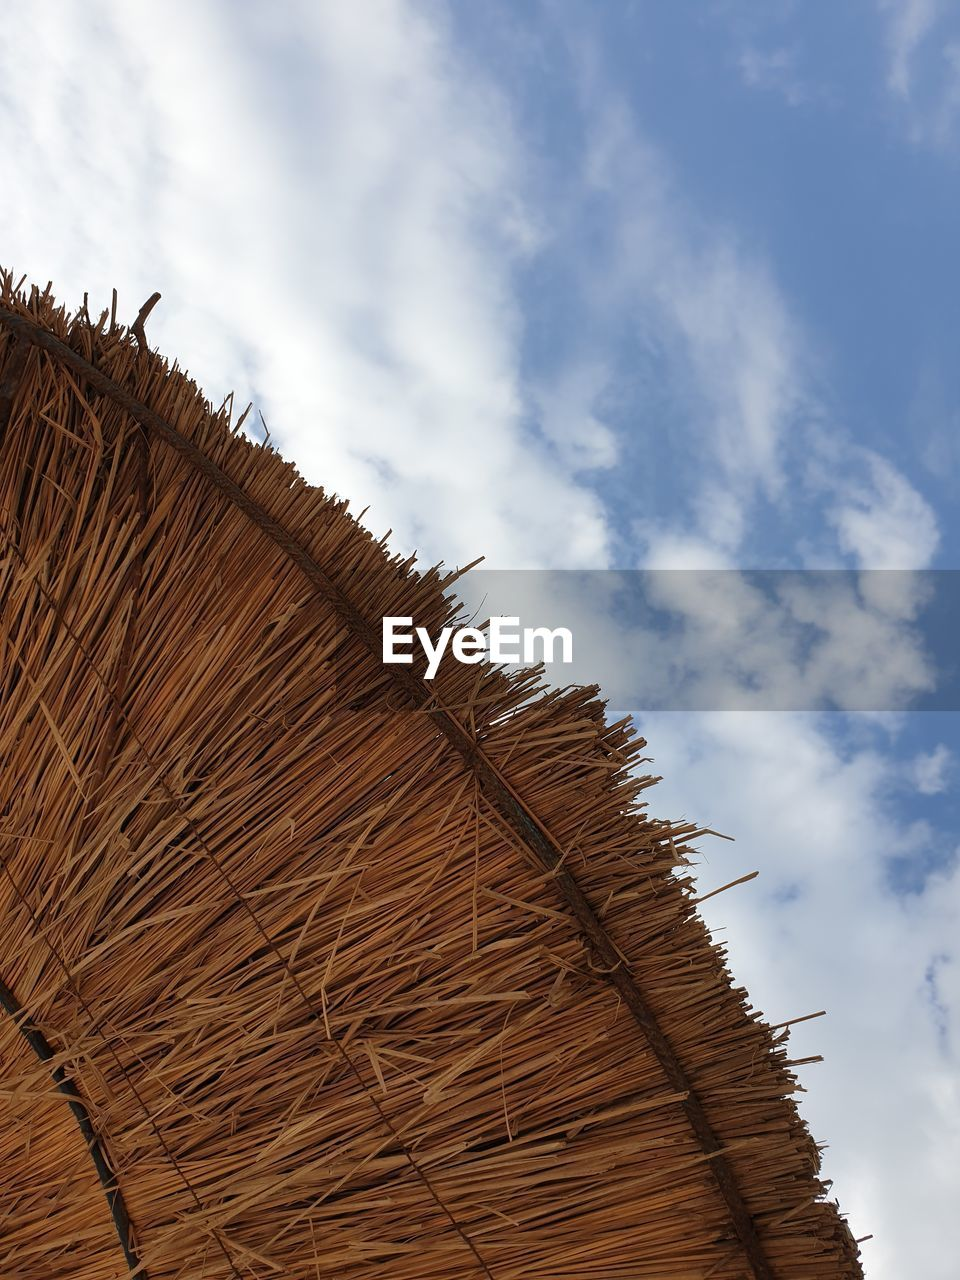 LOW ANGLE VIEW OF HAY BALES ON ROOF AGAINST SKY